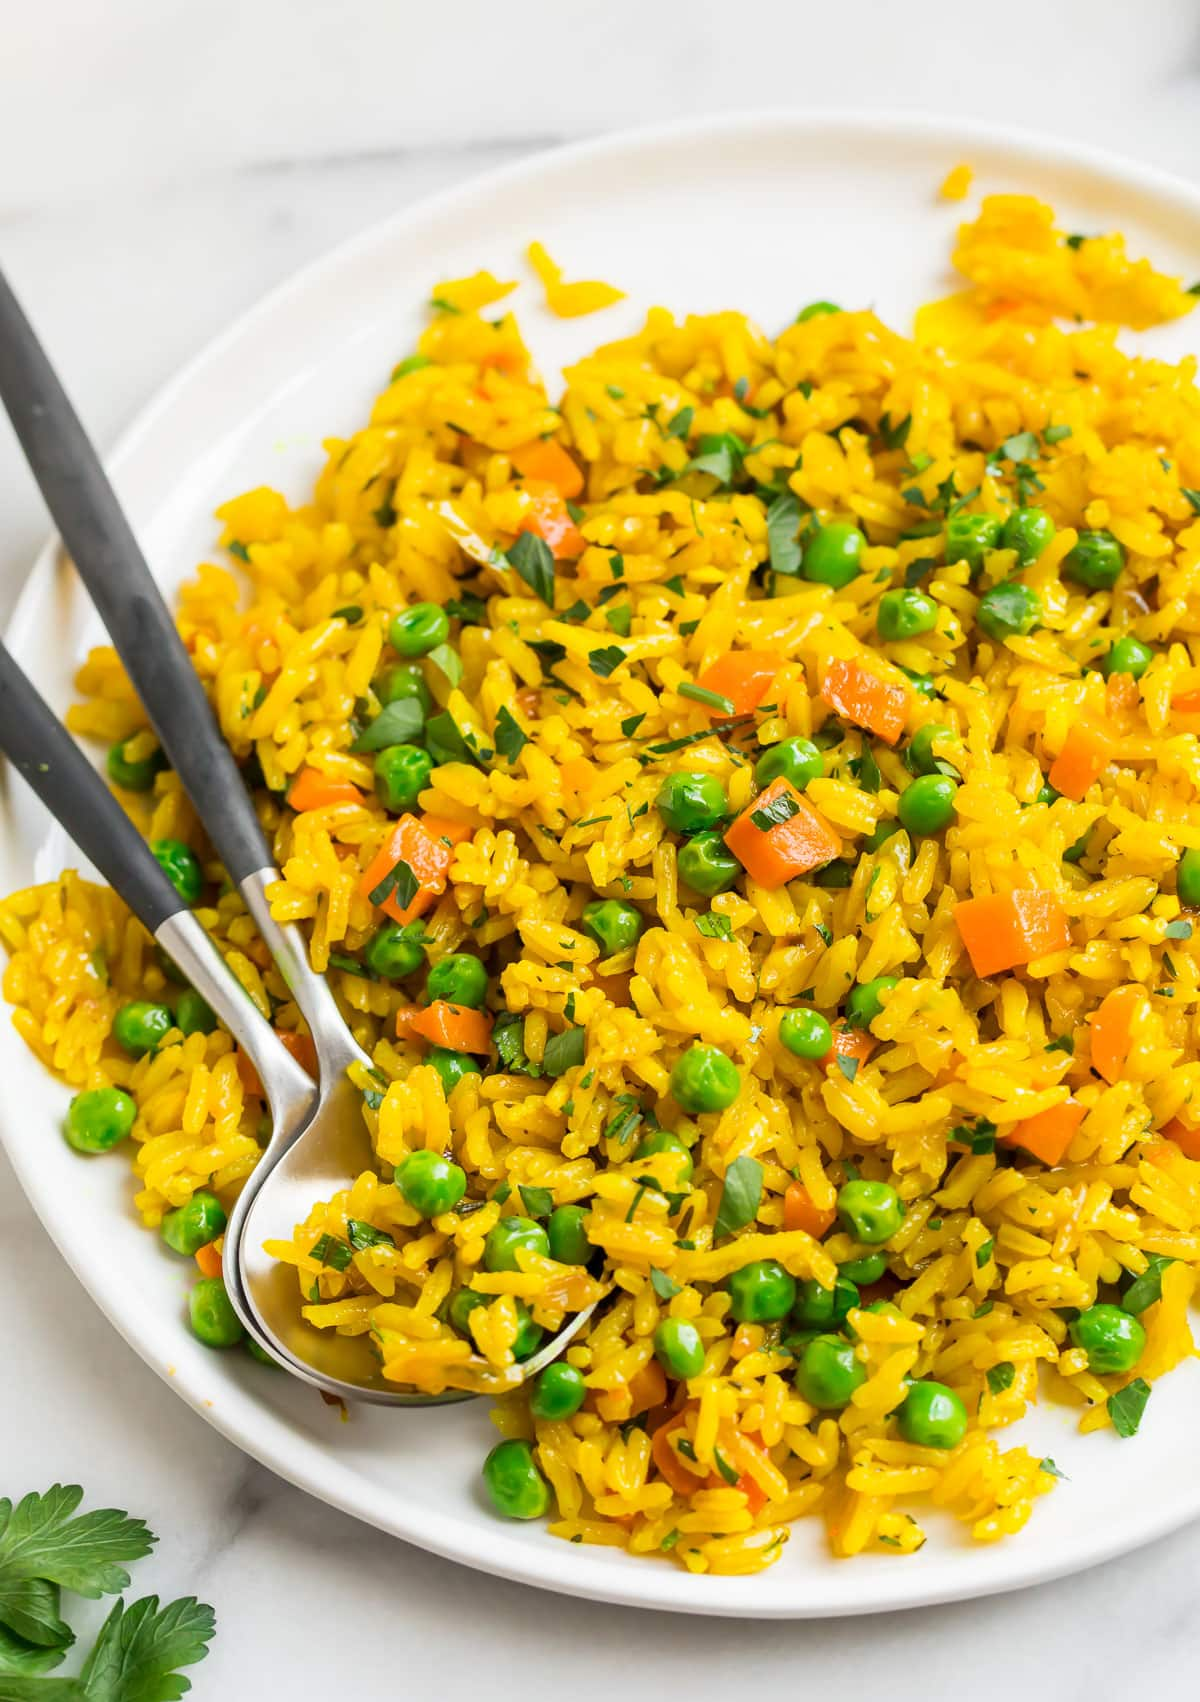 Easy turmeric rice with vegetables on a plate